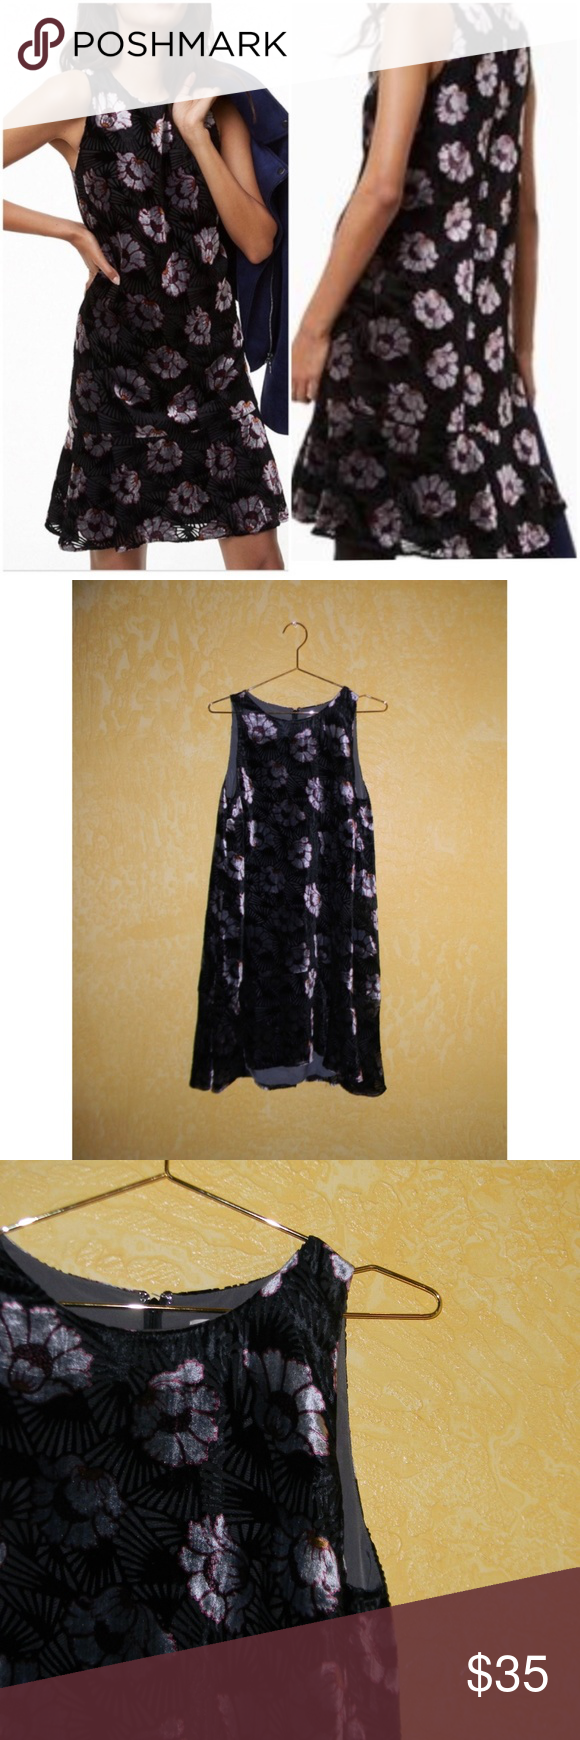 29956e99cde5 NWT Loft Iced Floral Velvet Swing Dress Size medium, new with tags, no flaws